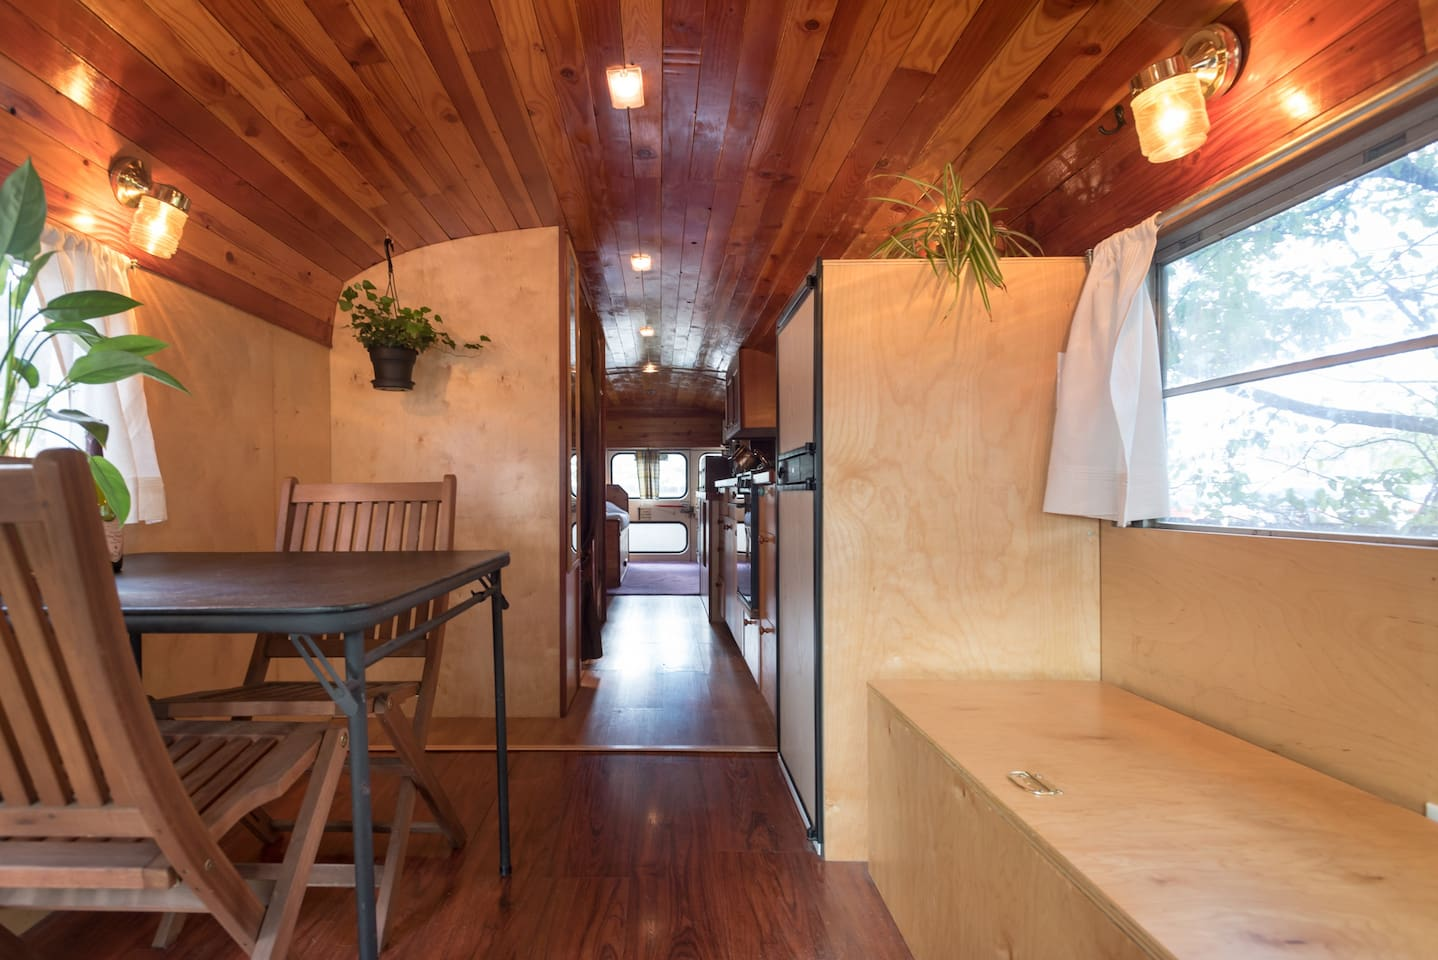 backyard land yacht in cherrywood campers rvs for rent in austin